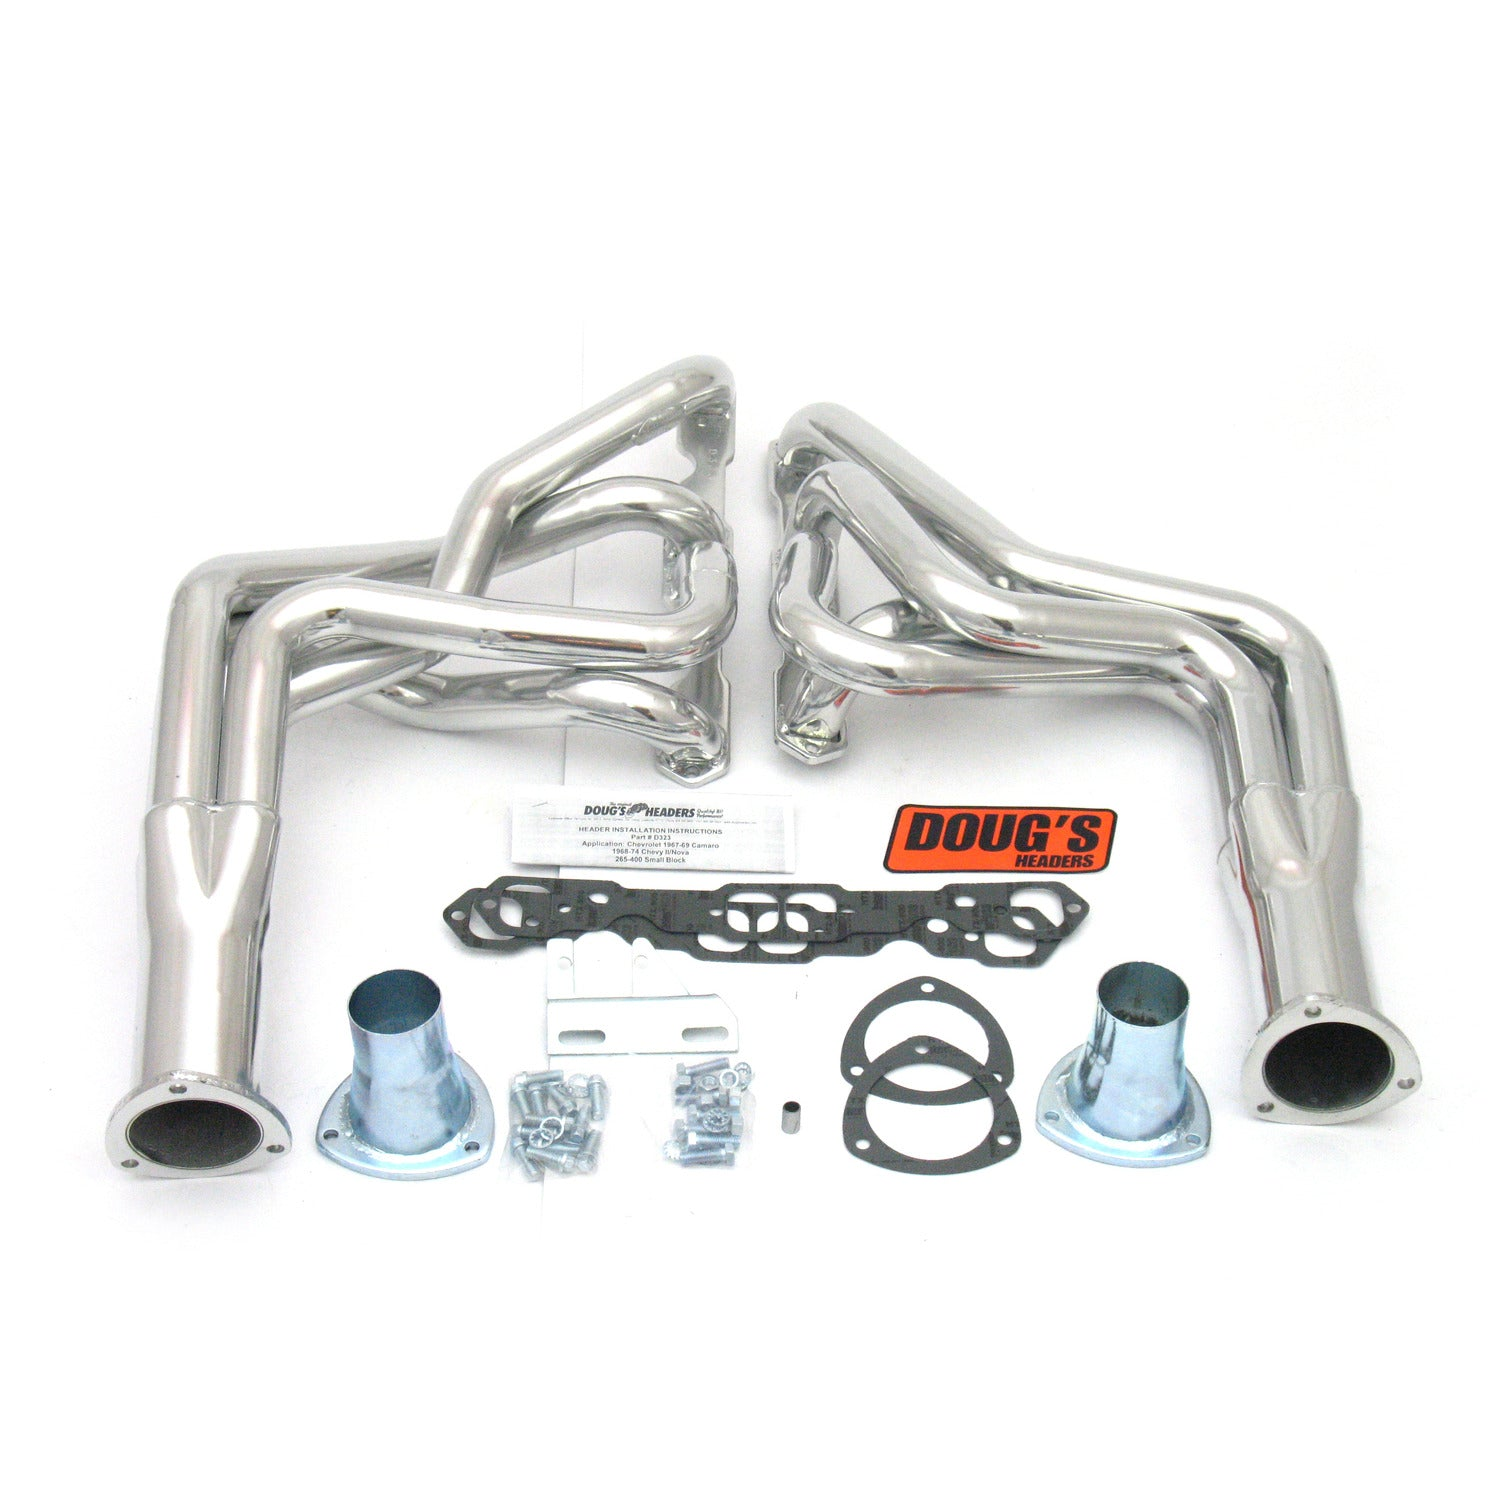 "Doug's Headers D323 1 7/8"" 4-Tube Full Length Header Camaro Small Block Chevrolet 67-69 Metallic Ceramic Coating"